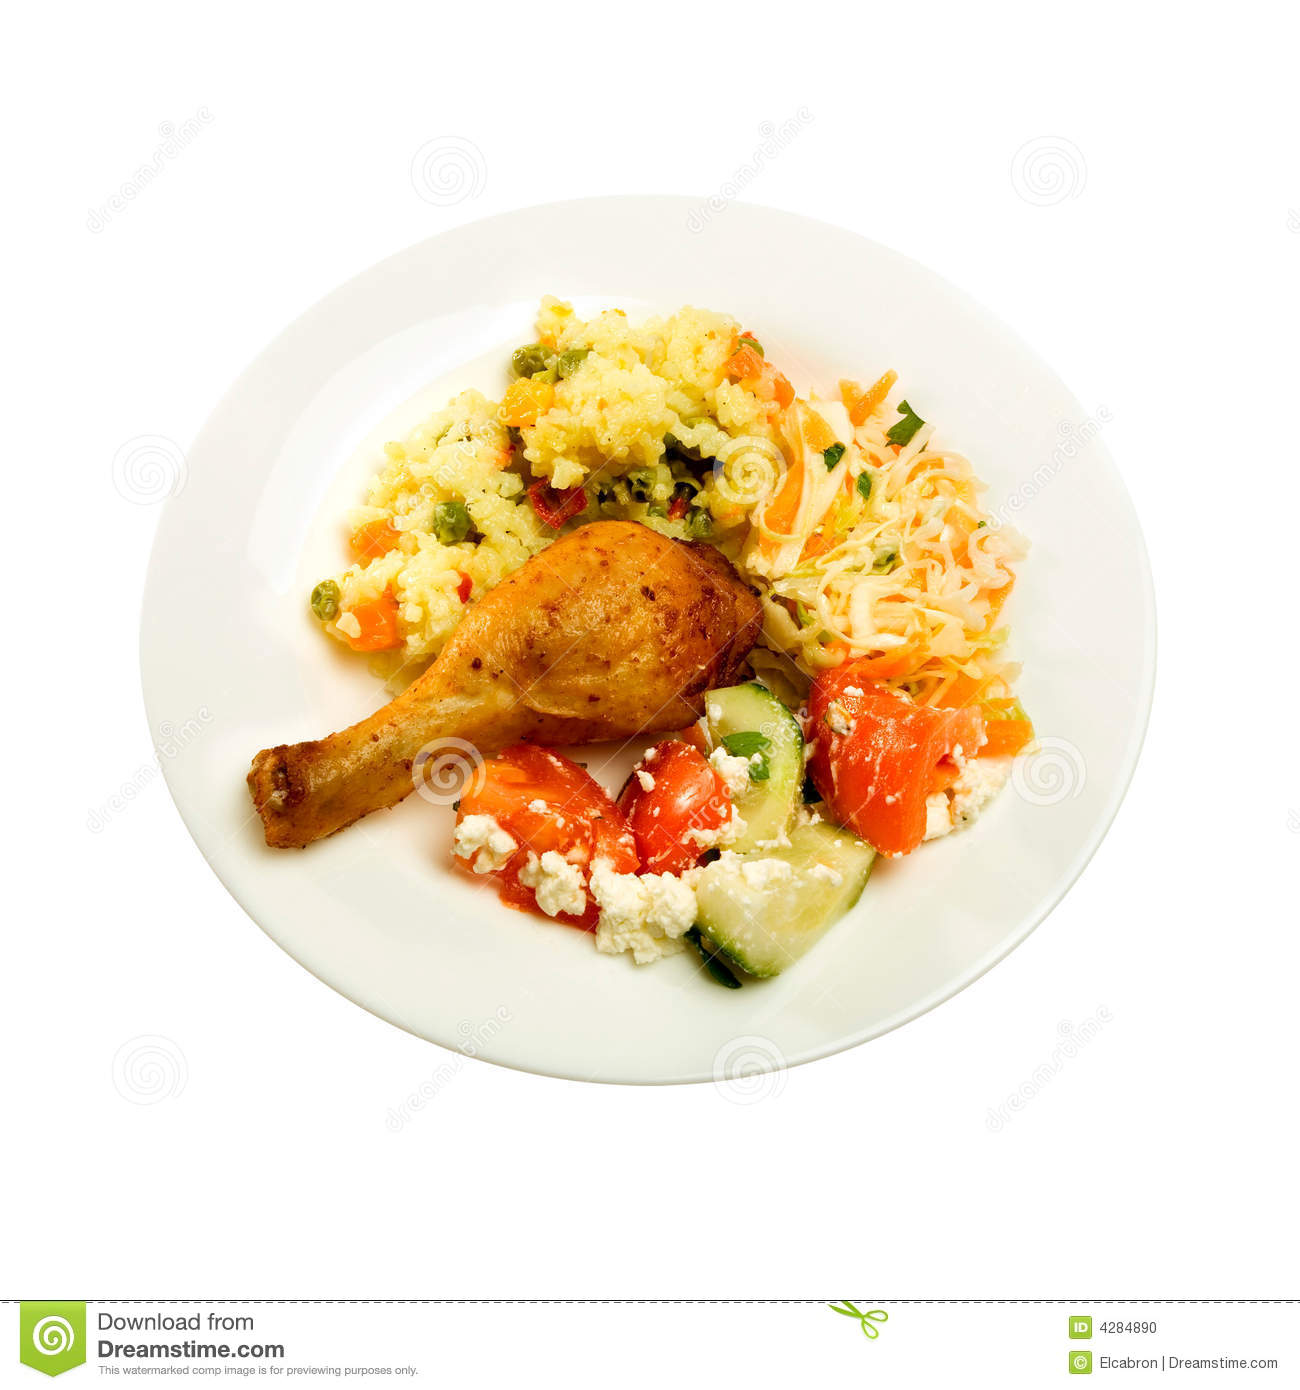 Chicken hips essay – Boost Your learning